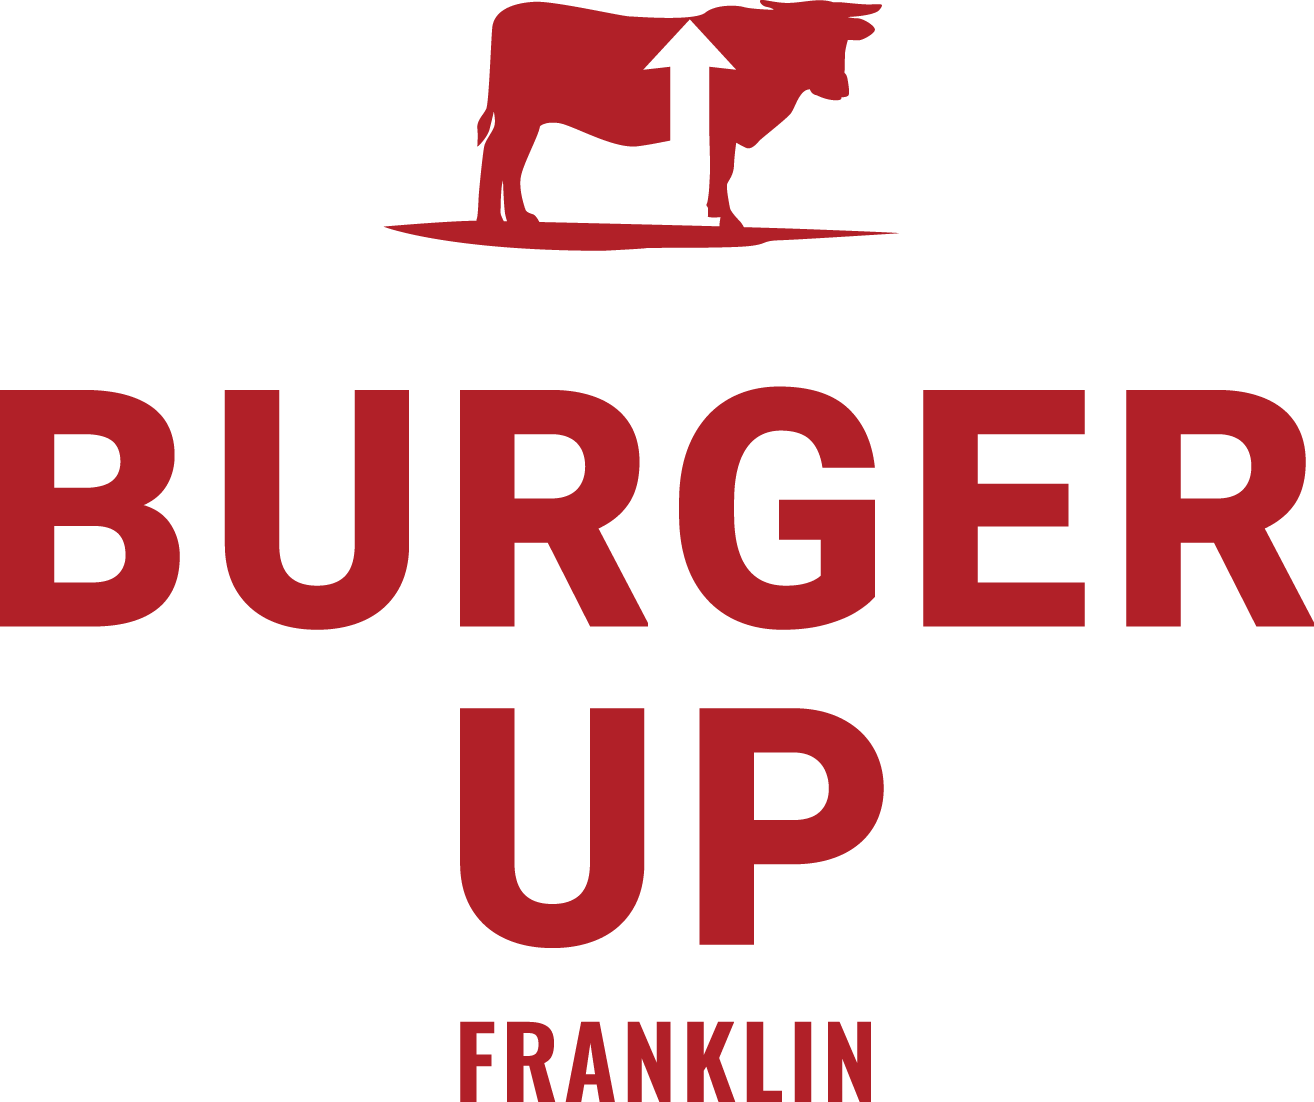 Burger Up Franklin